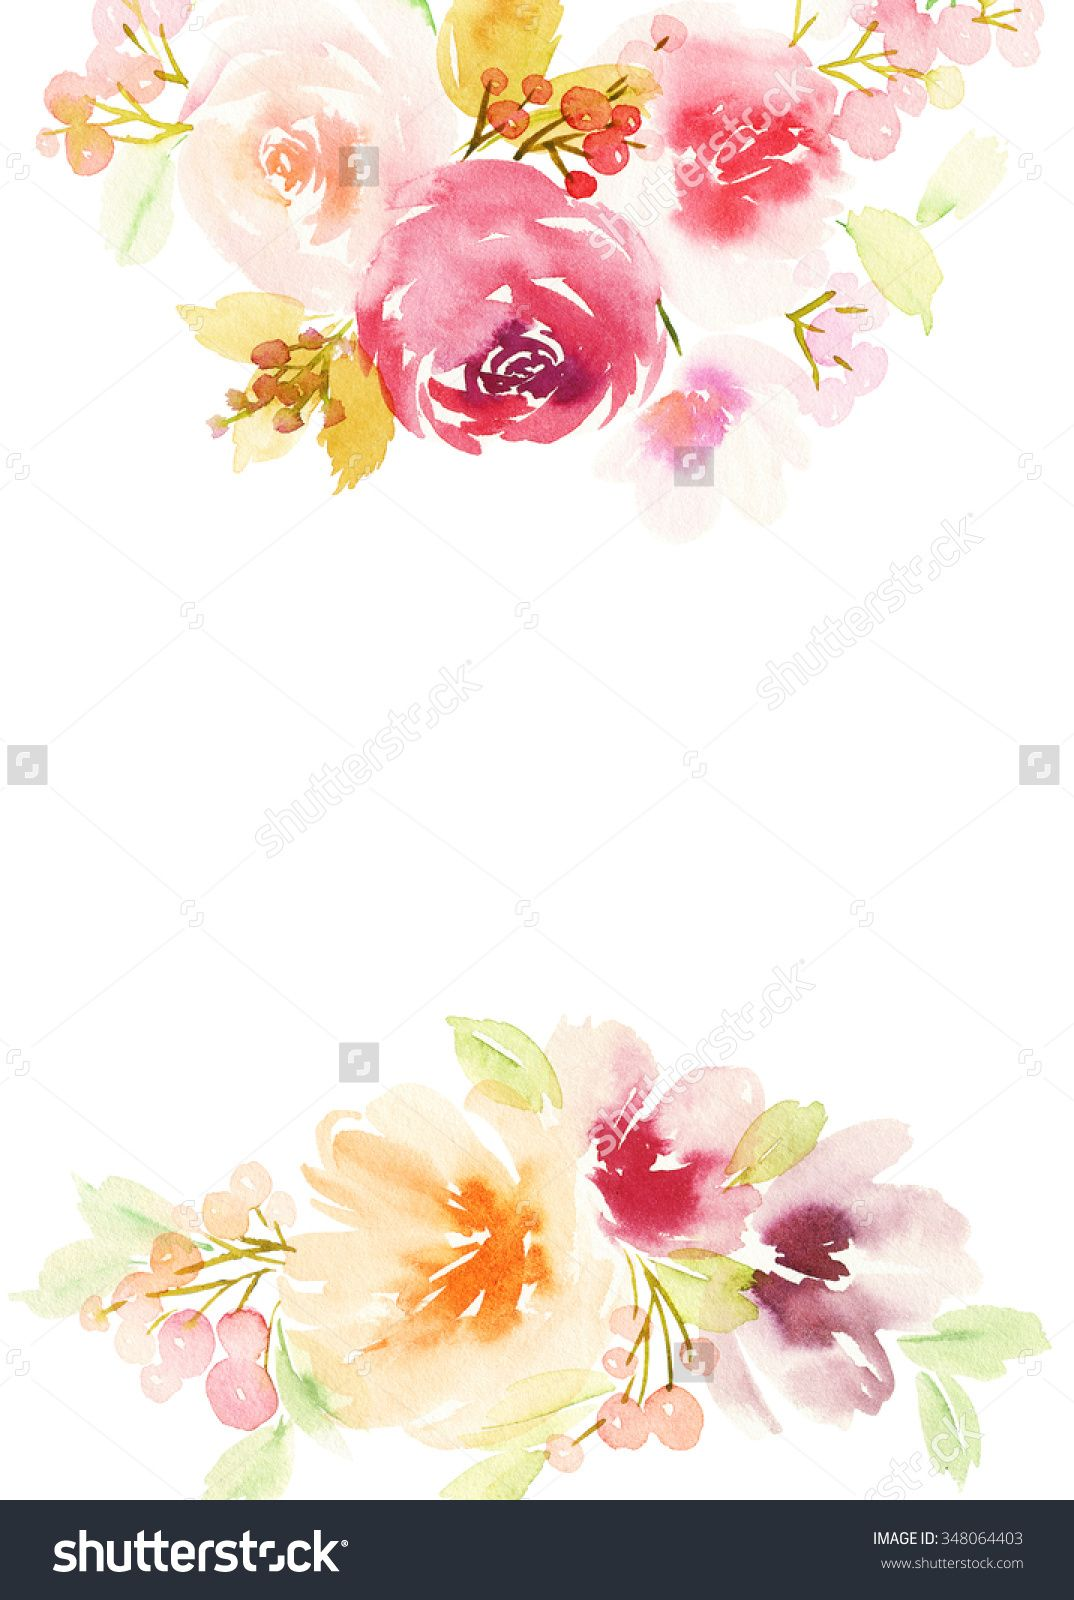 Stock Photo Greeting Card With Flowers Pastel Colors Handmade